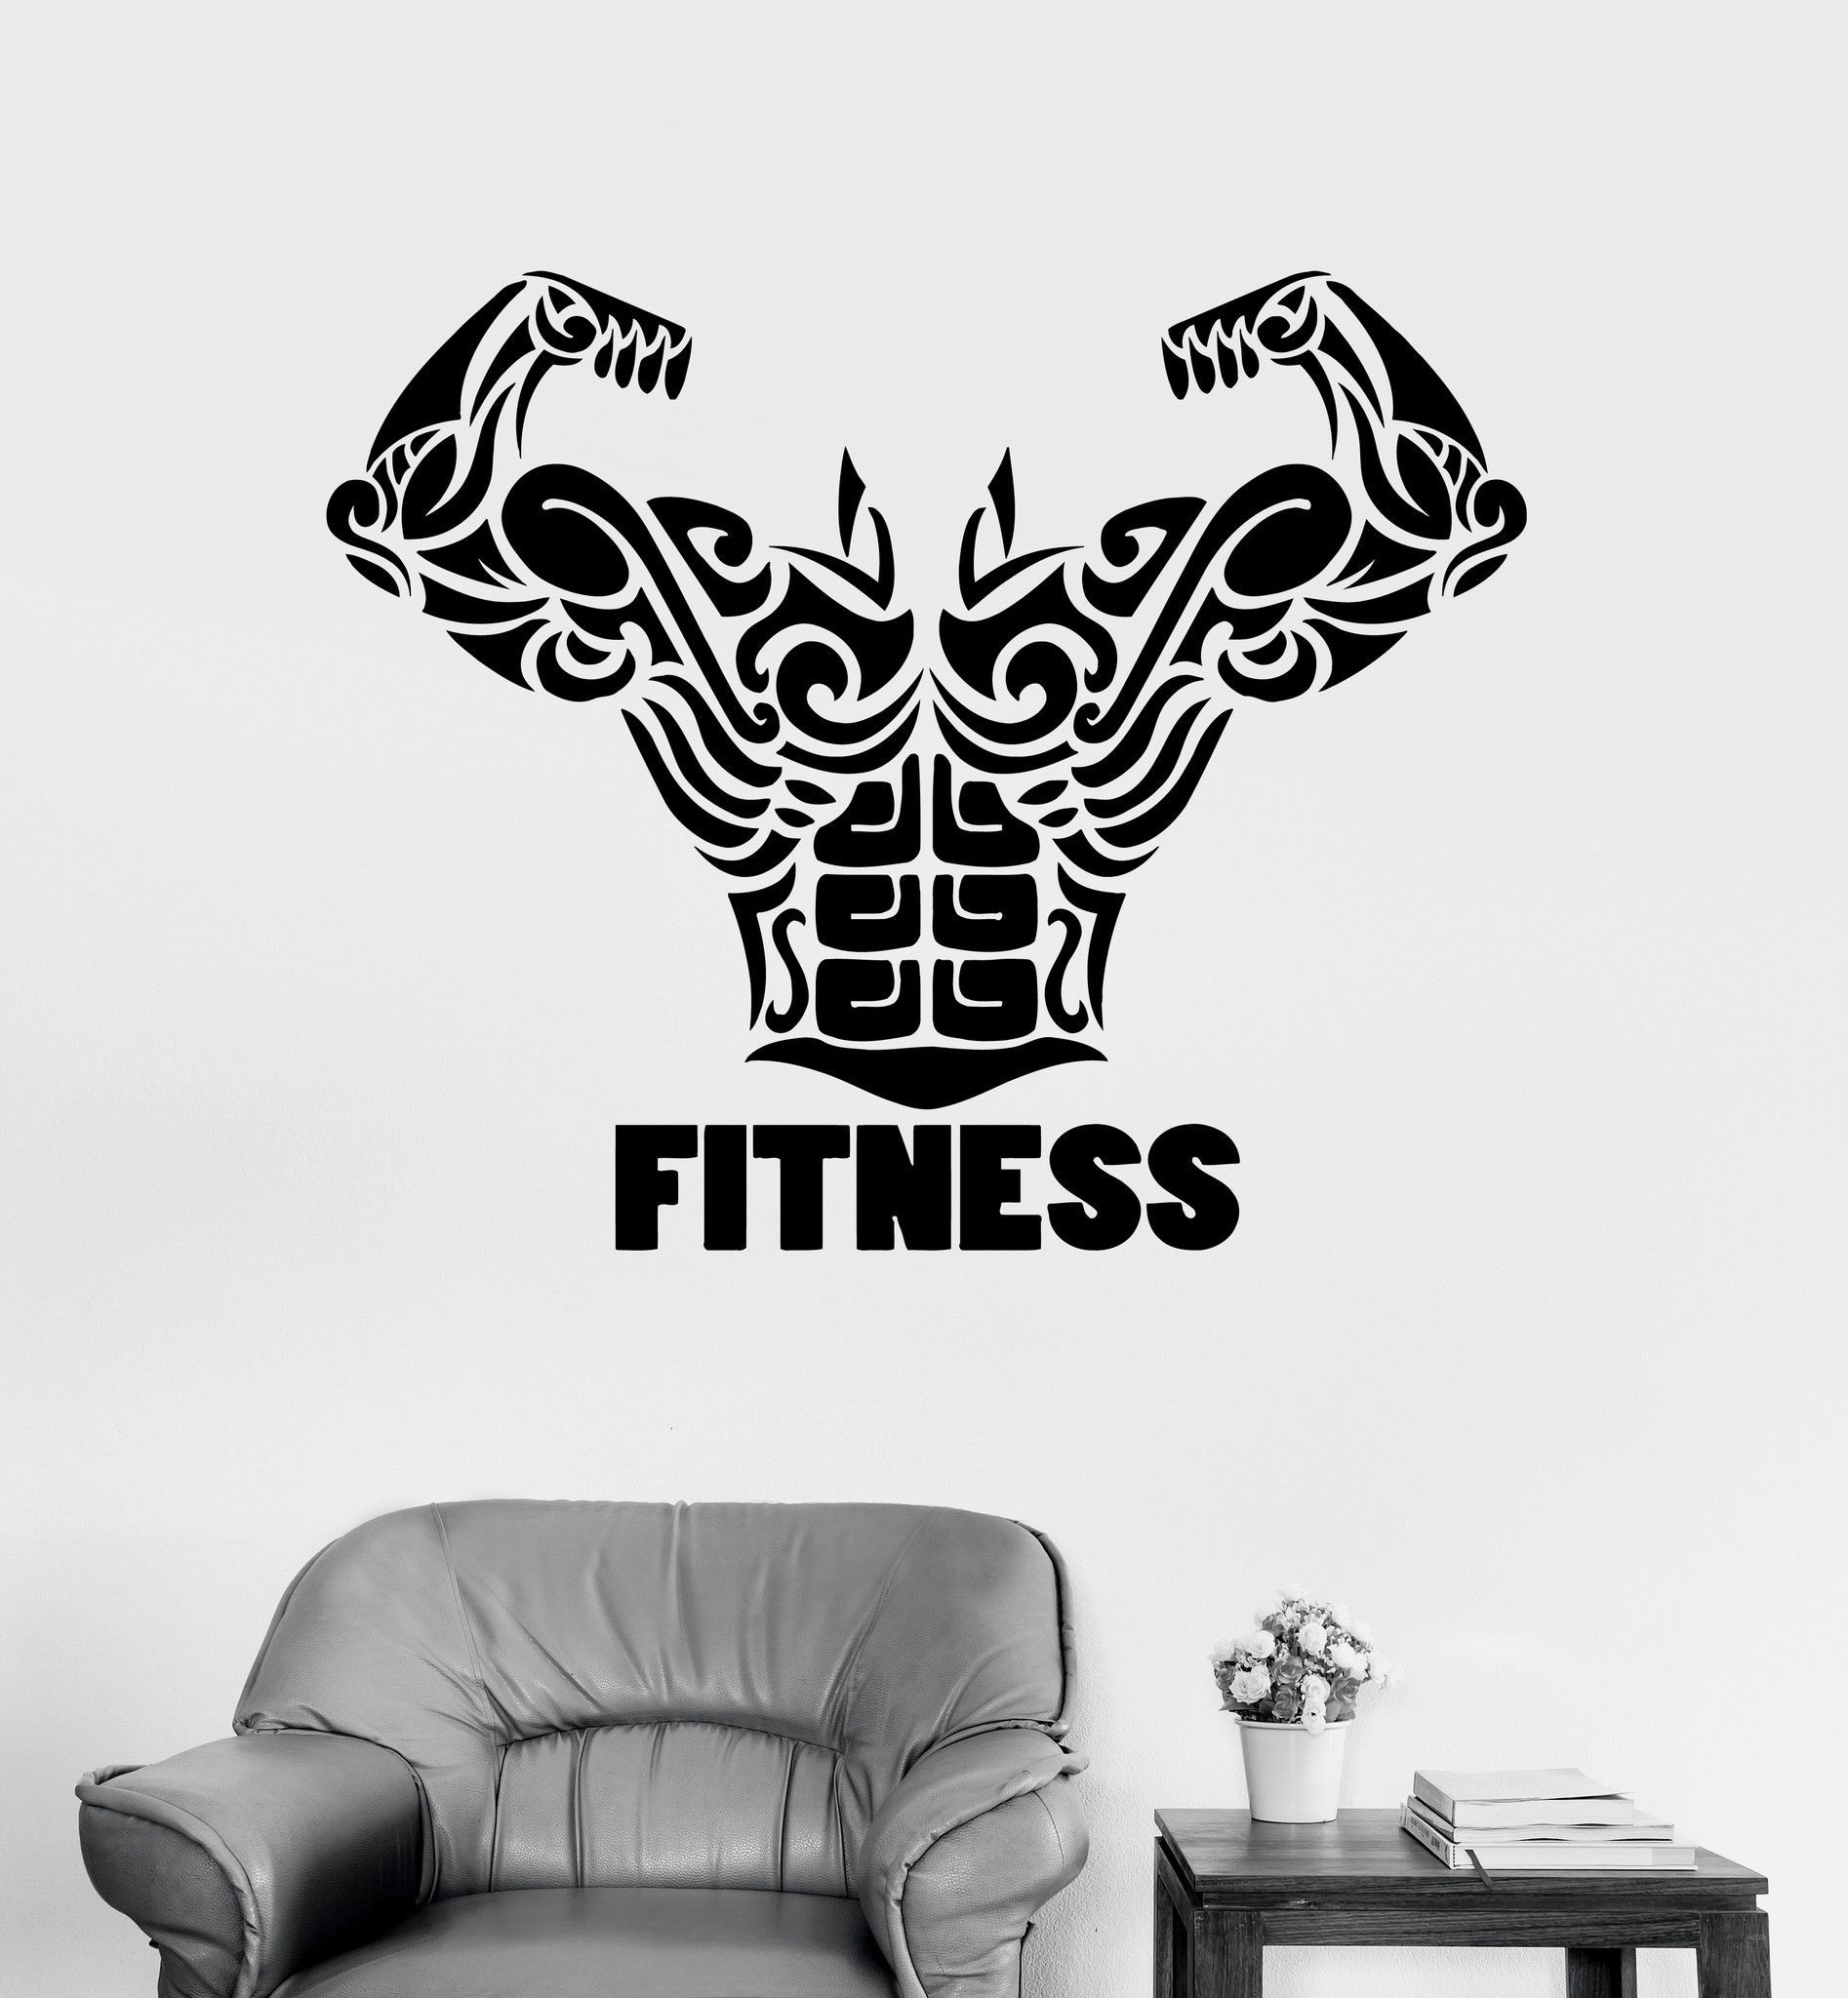 Vinyl Wall Decal Fitness Word Gym Bodybuilding Sports Stickers - Where to get vinyl stickers made